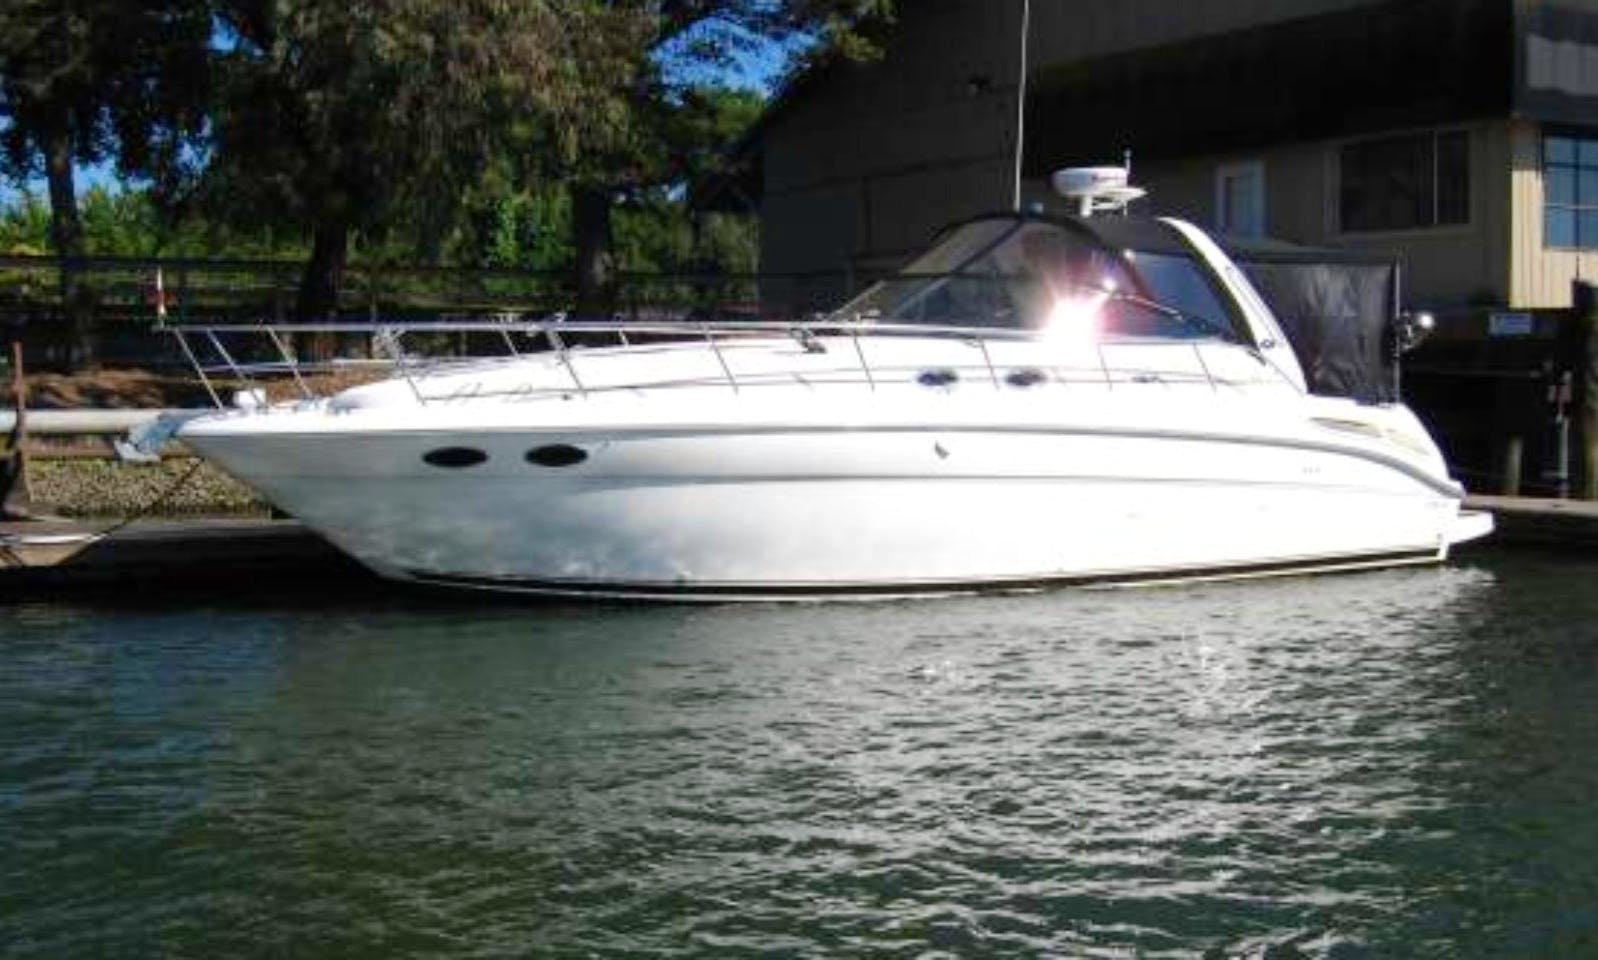 Charleston Bachelorette Party Charter Special!  40' Motor Yacht in Downtown Charleston Private harbor Cruise in Style